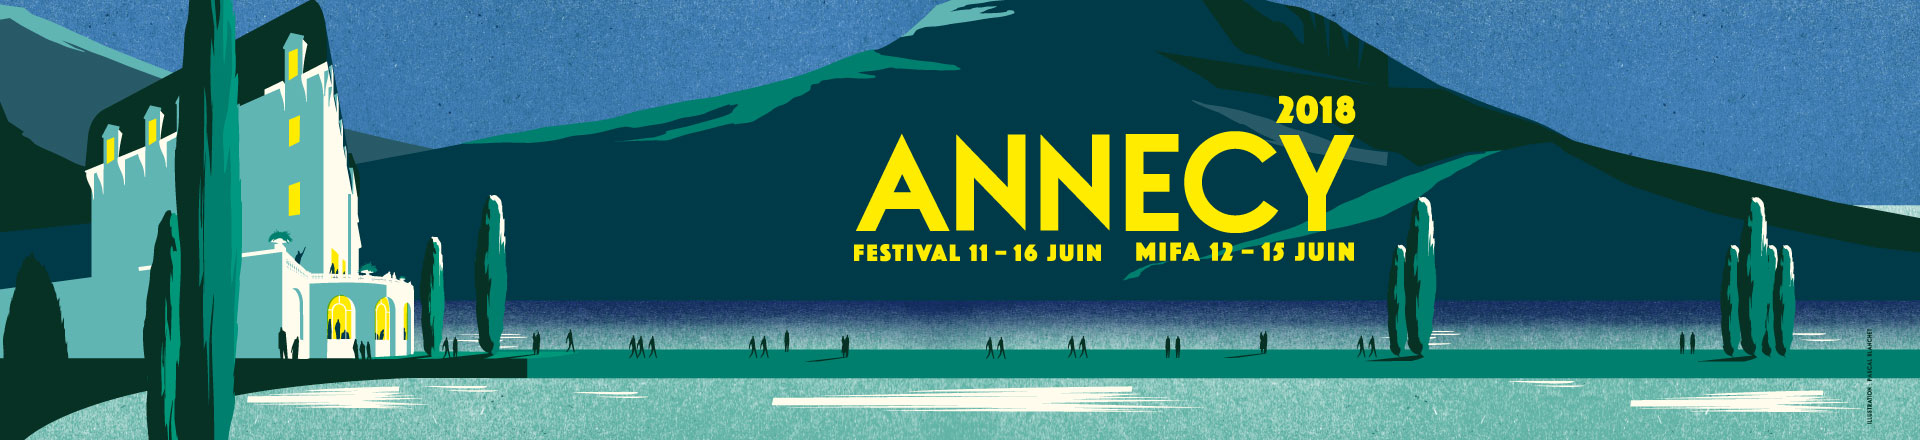 annecy affice